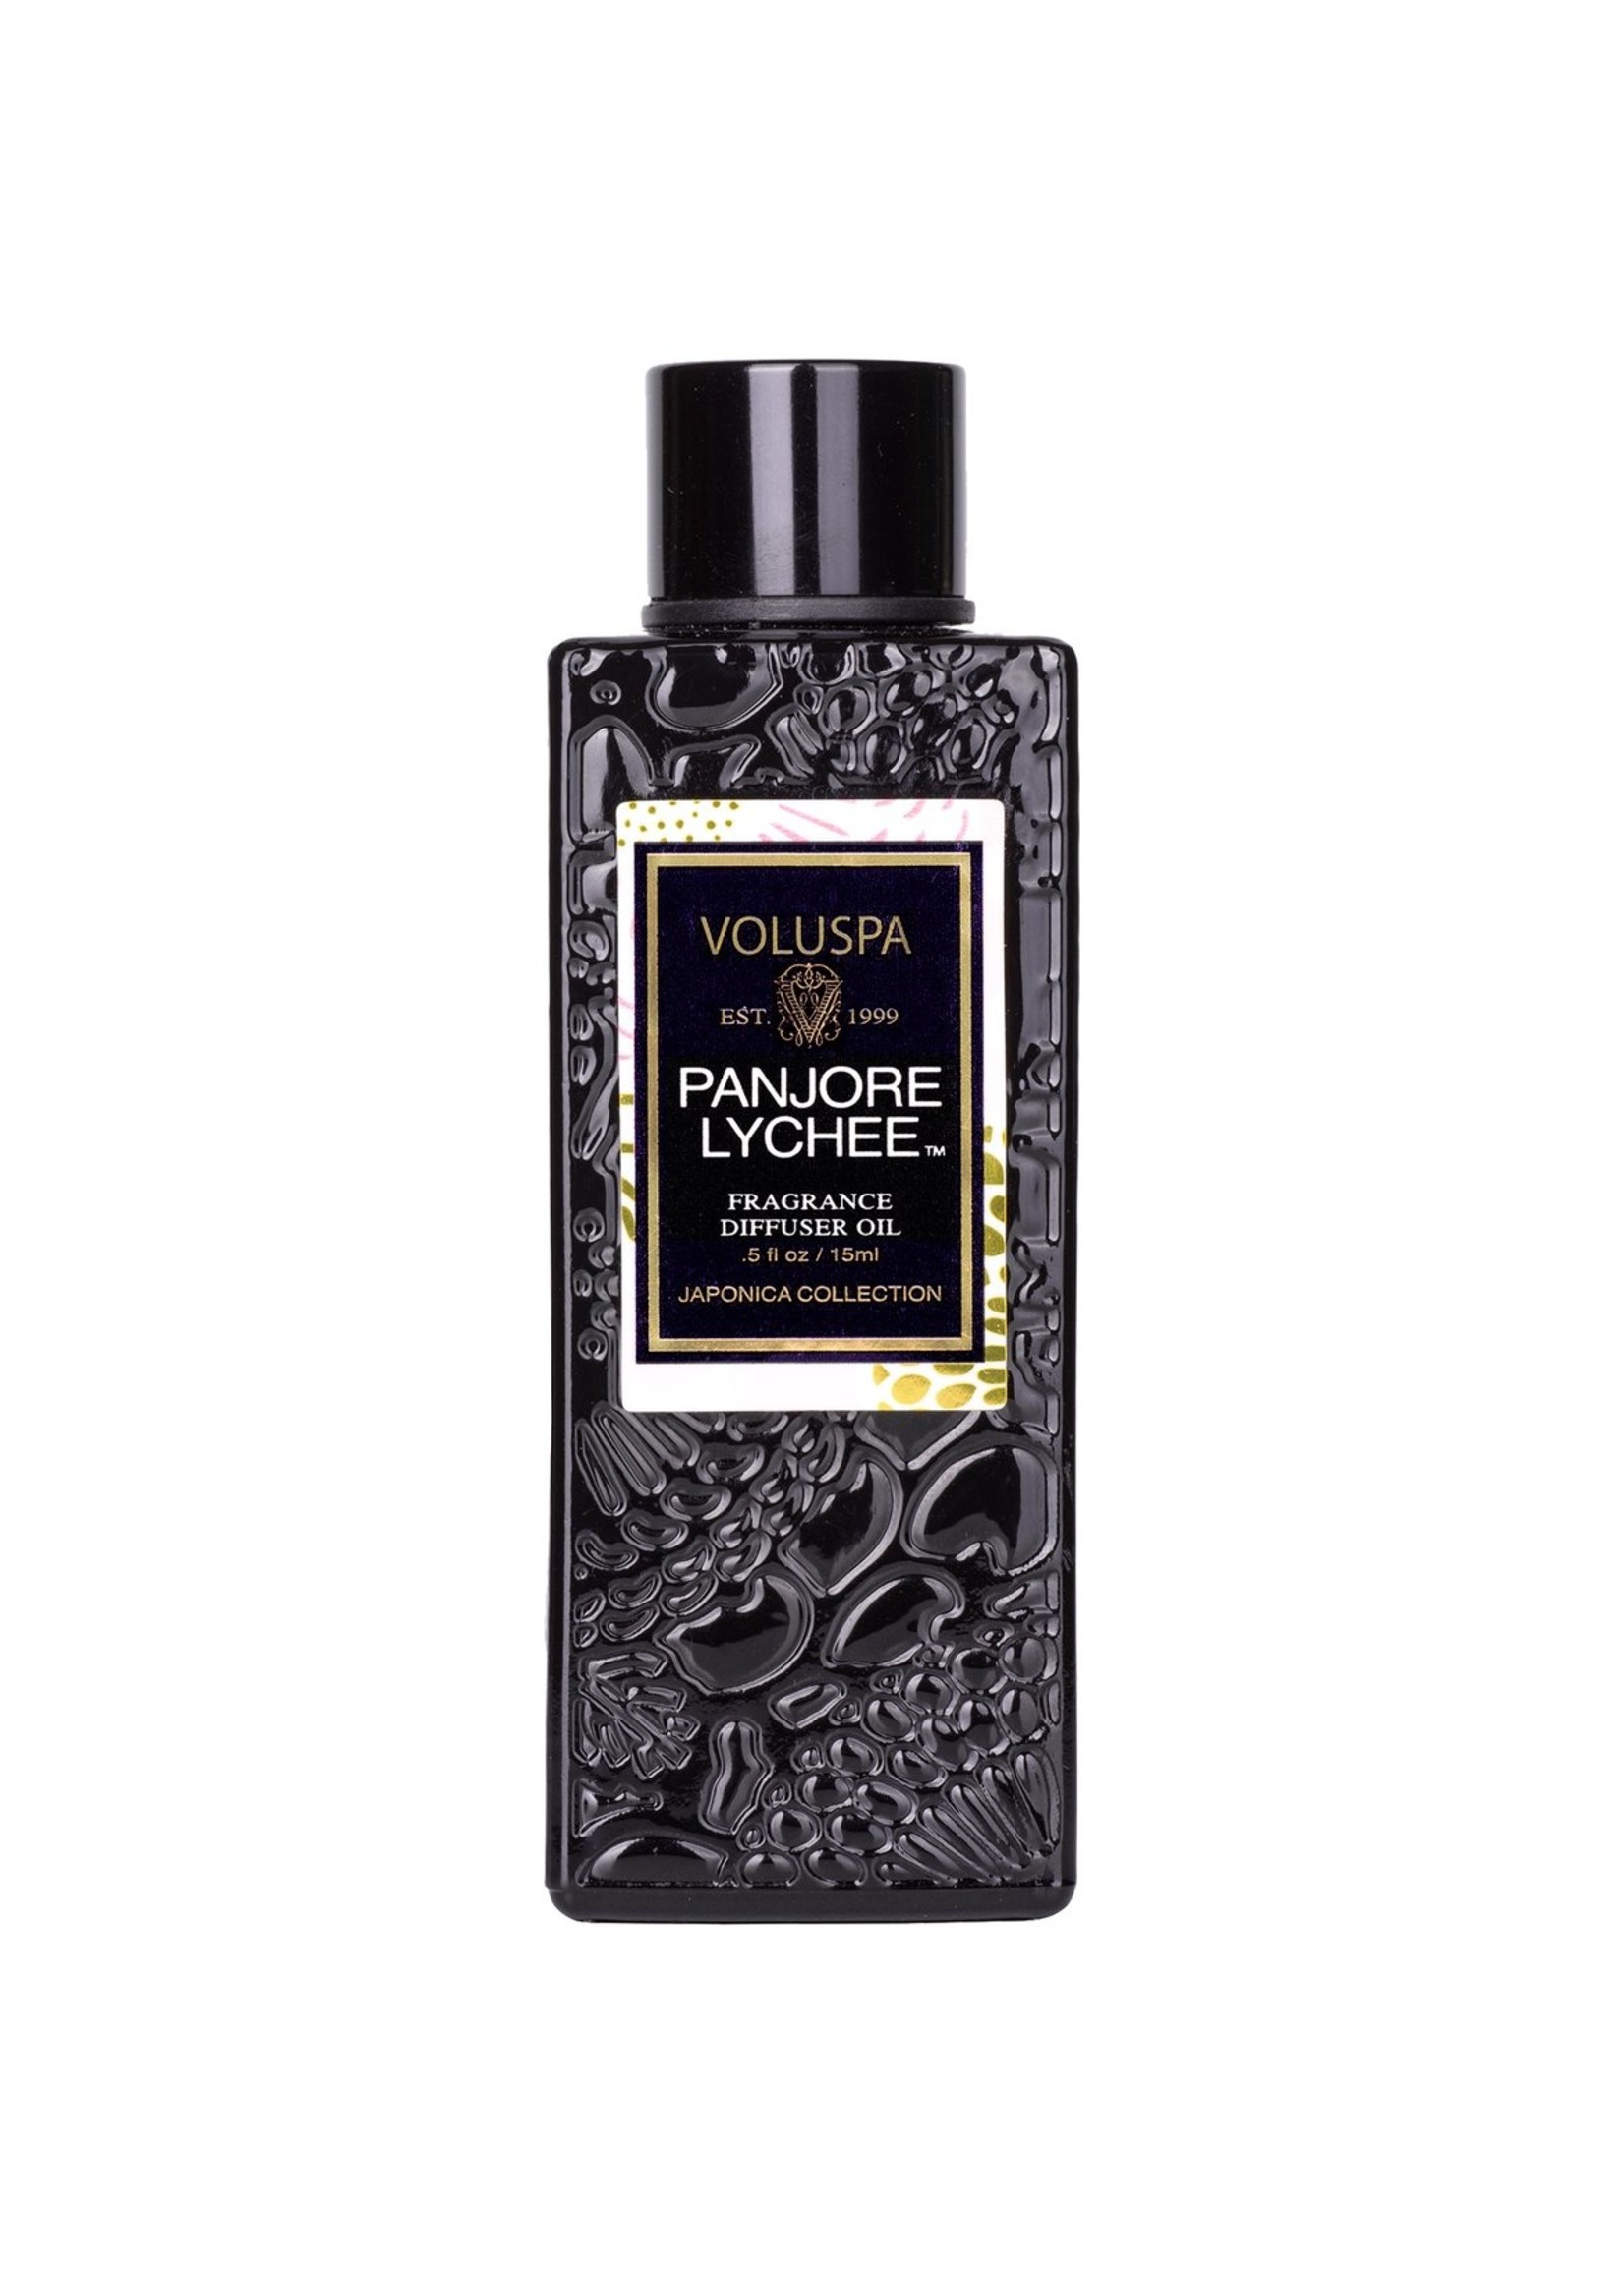 Voluspa Panjore Lychee Ultra Sonic Diffuser Fragrance Oil